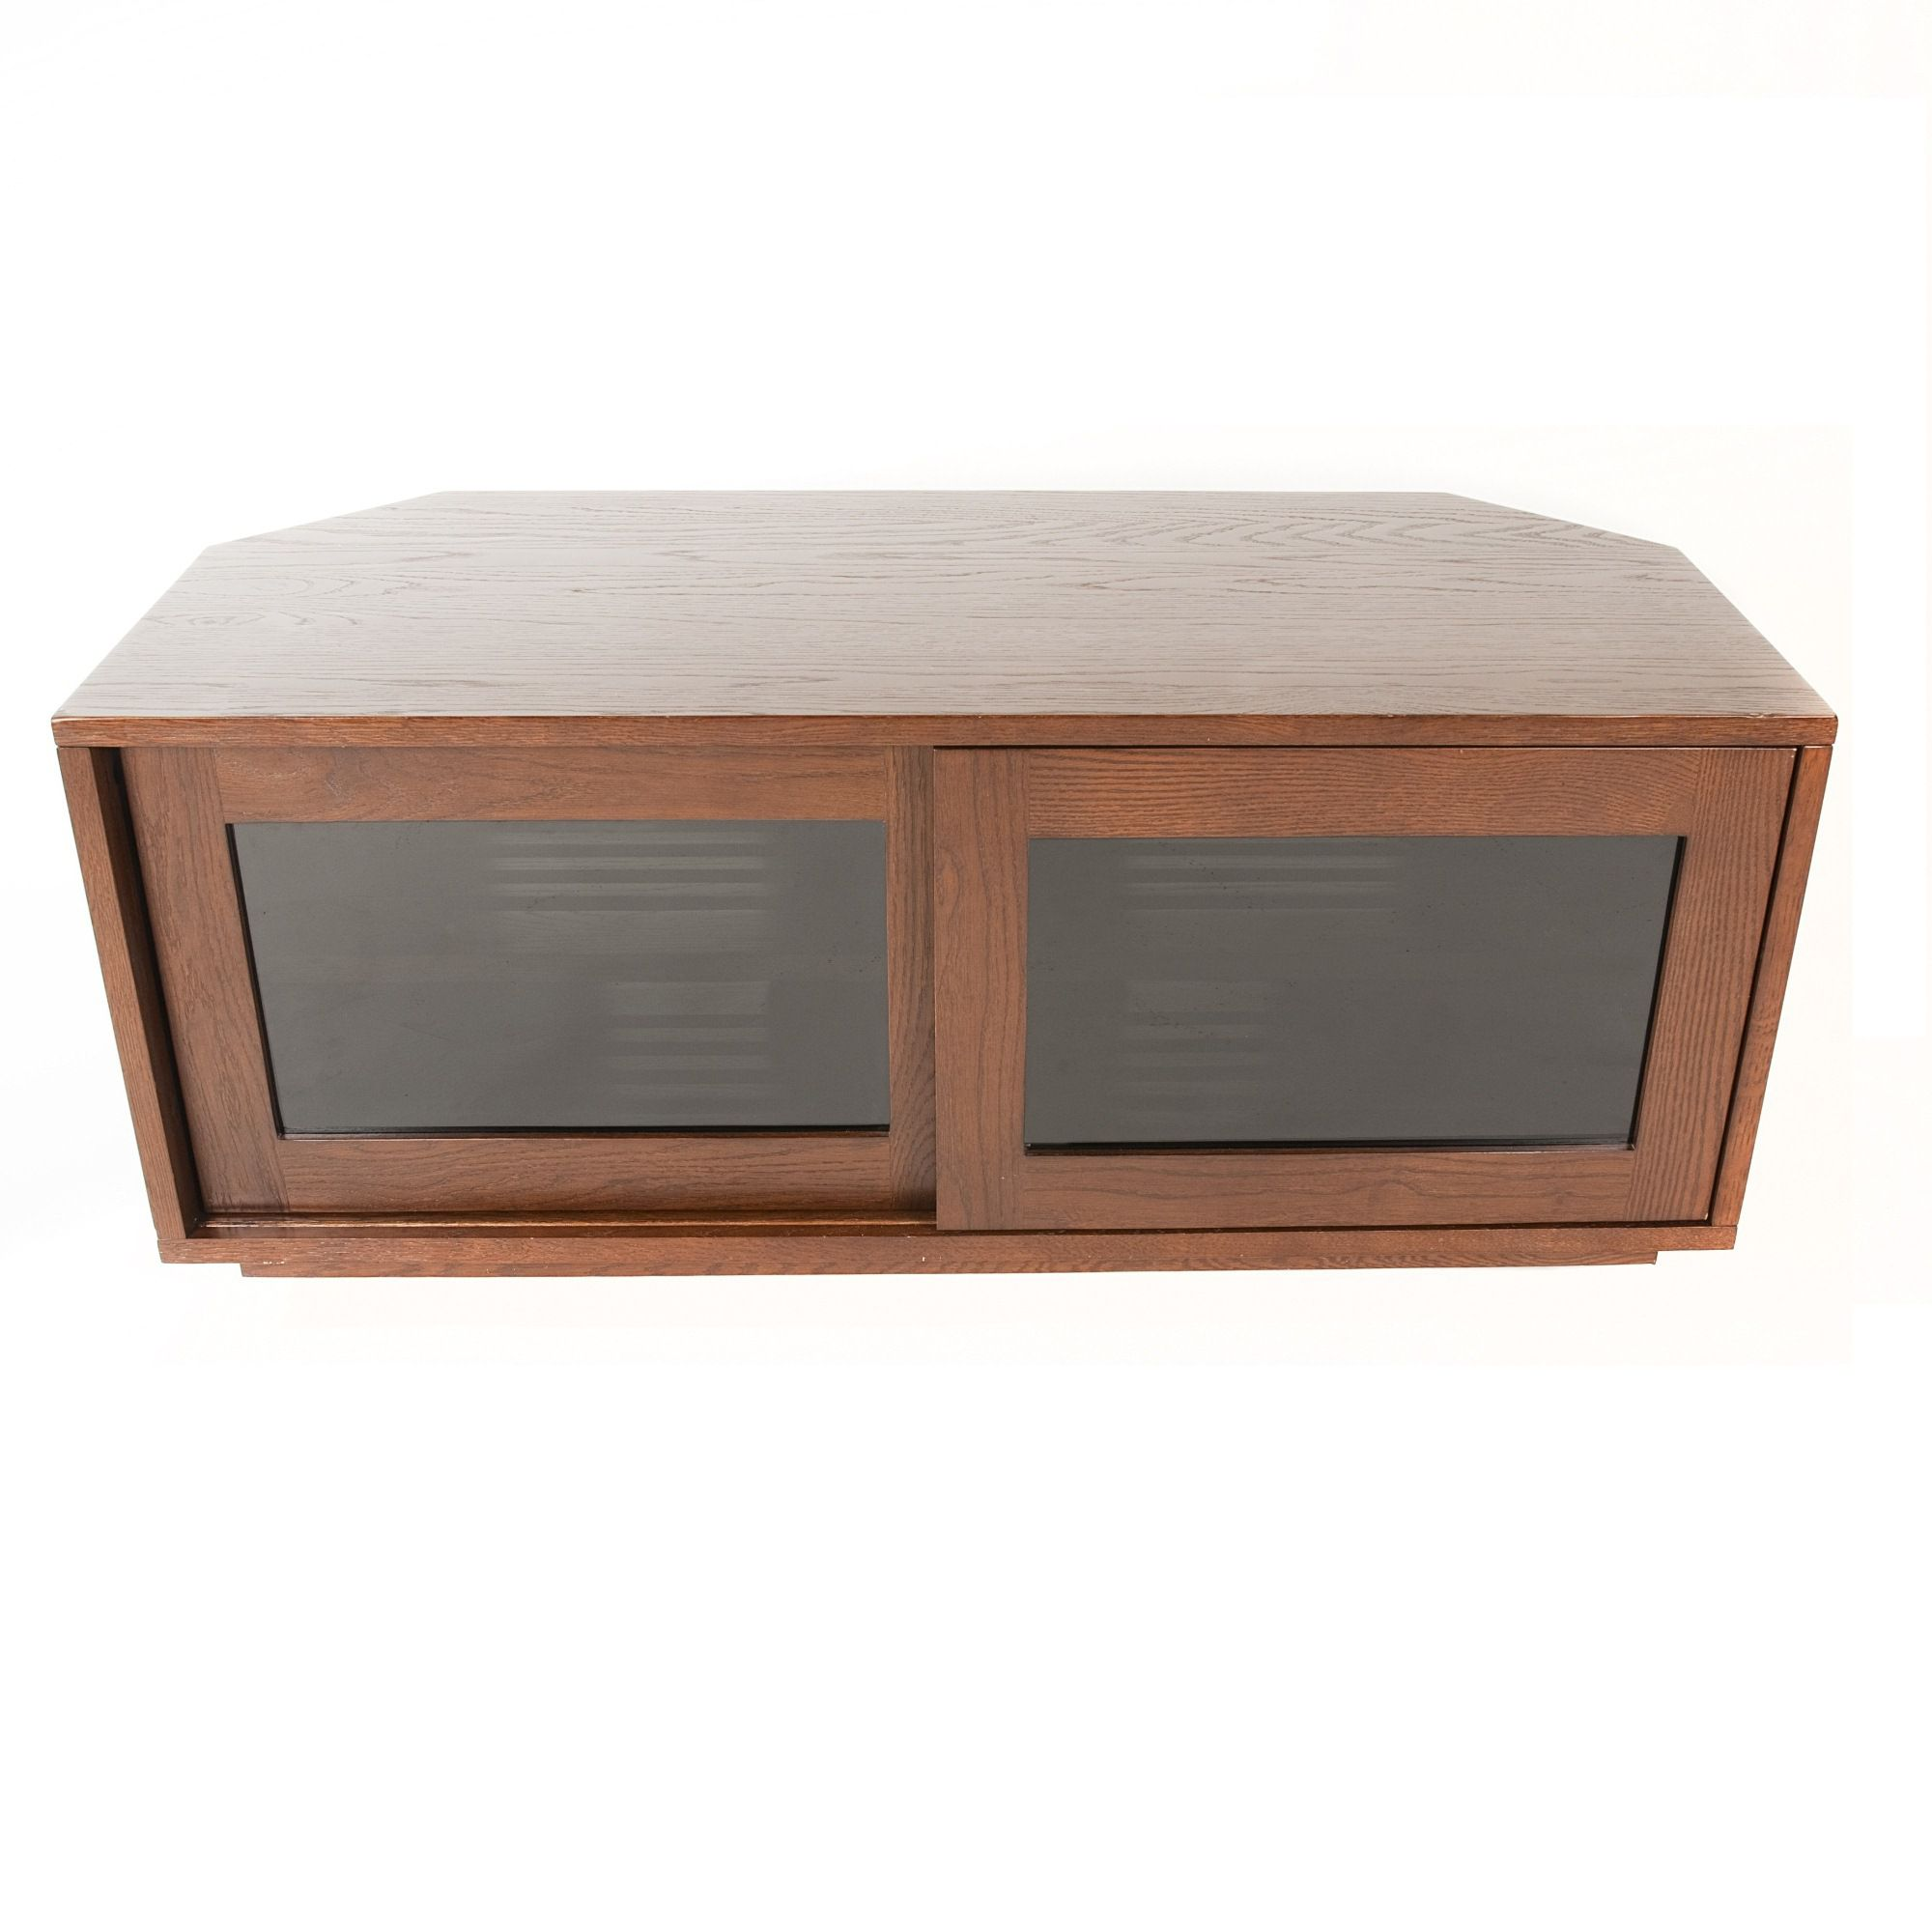 Optimum Coruna TV Stand up to 50'' TV's - Warm Oak at Tesco Direct